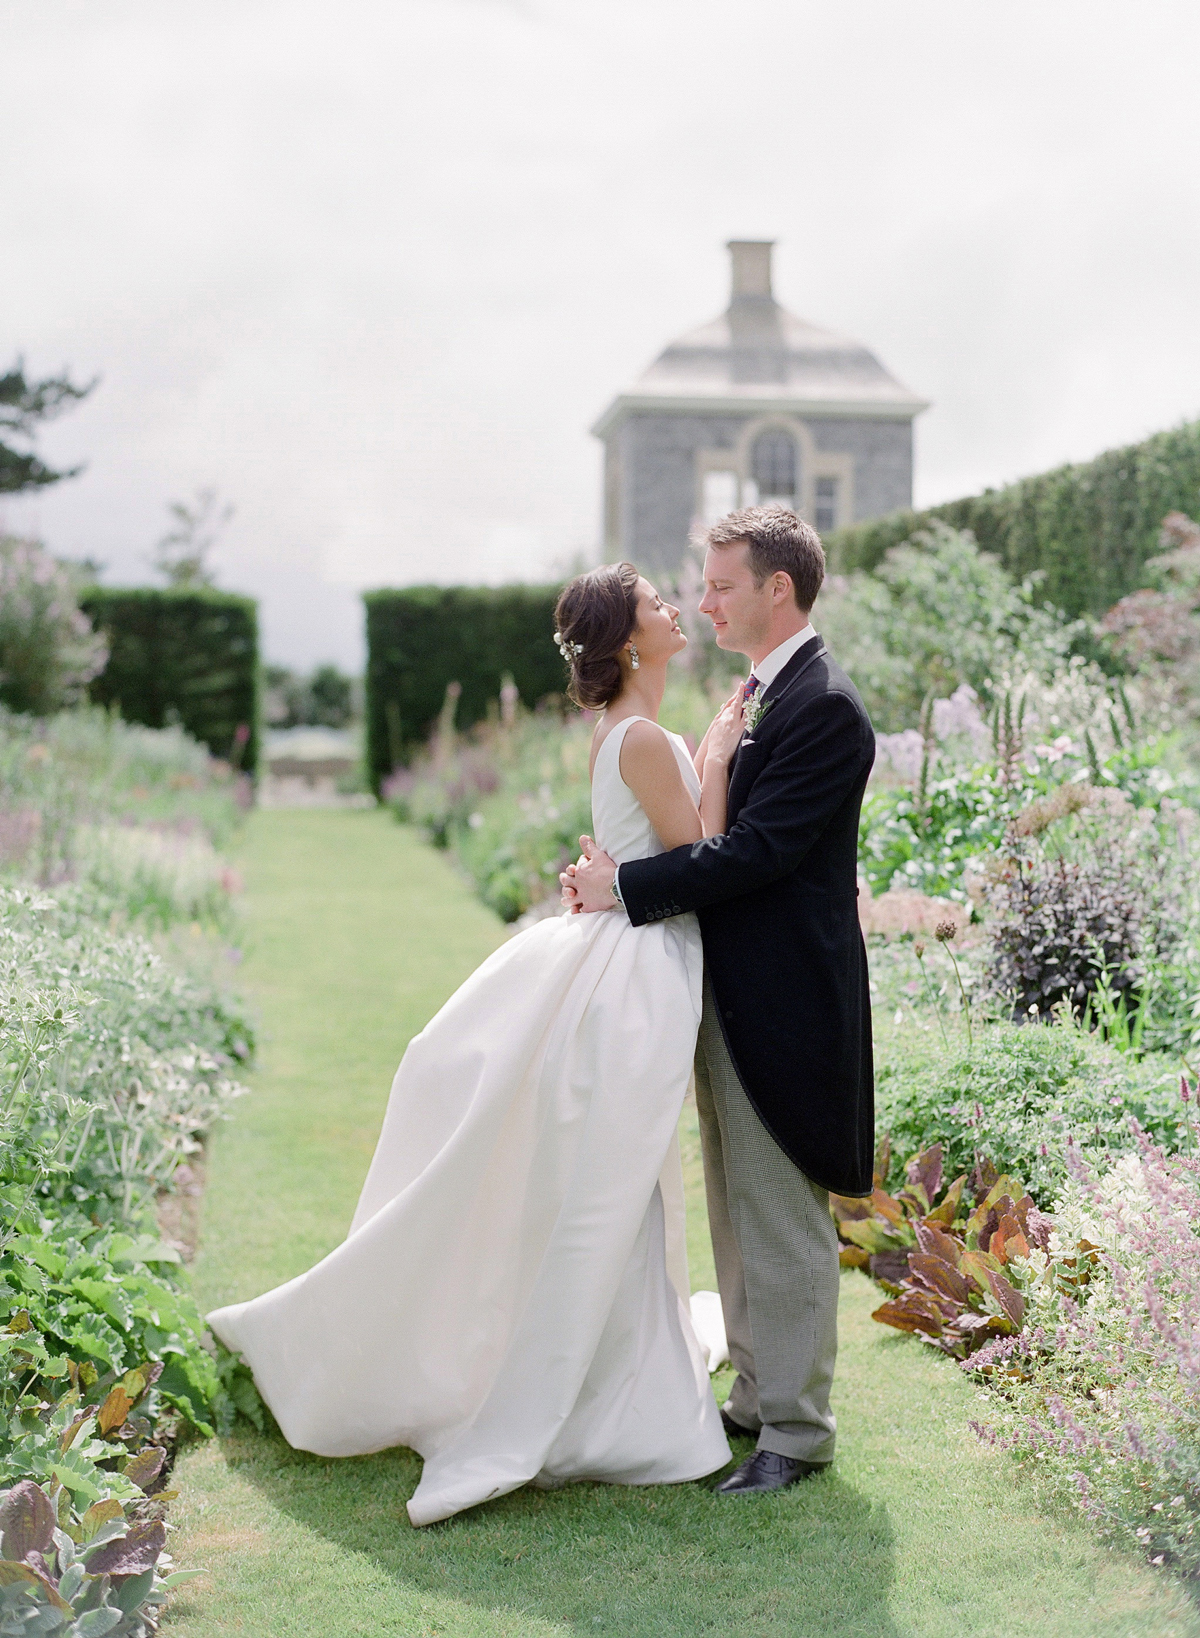 peony matthew england wedding couple embracing in garden